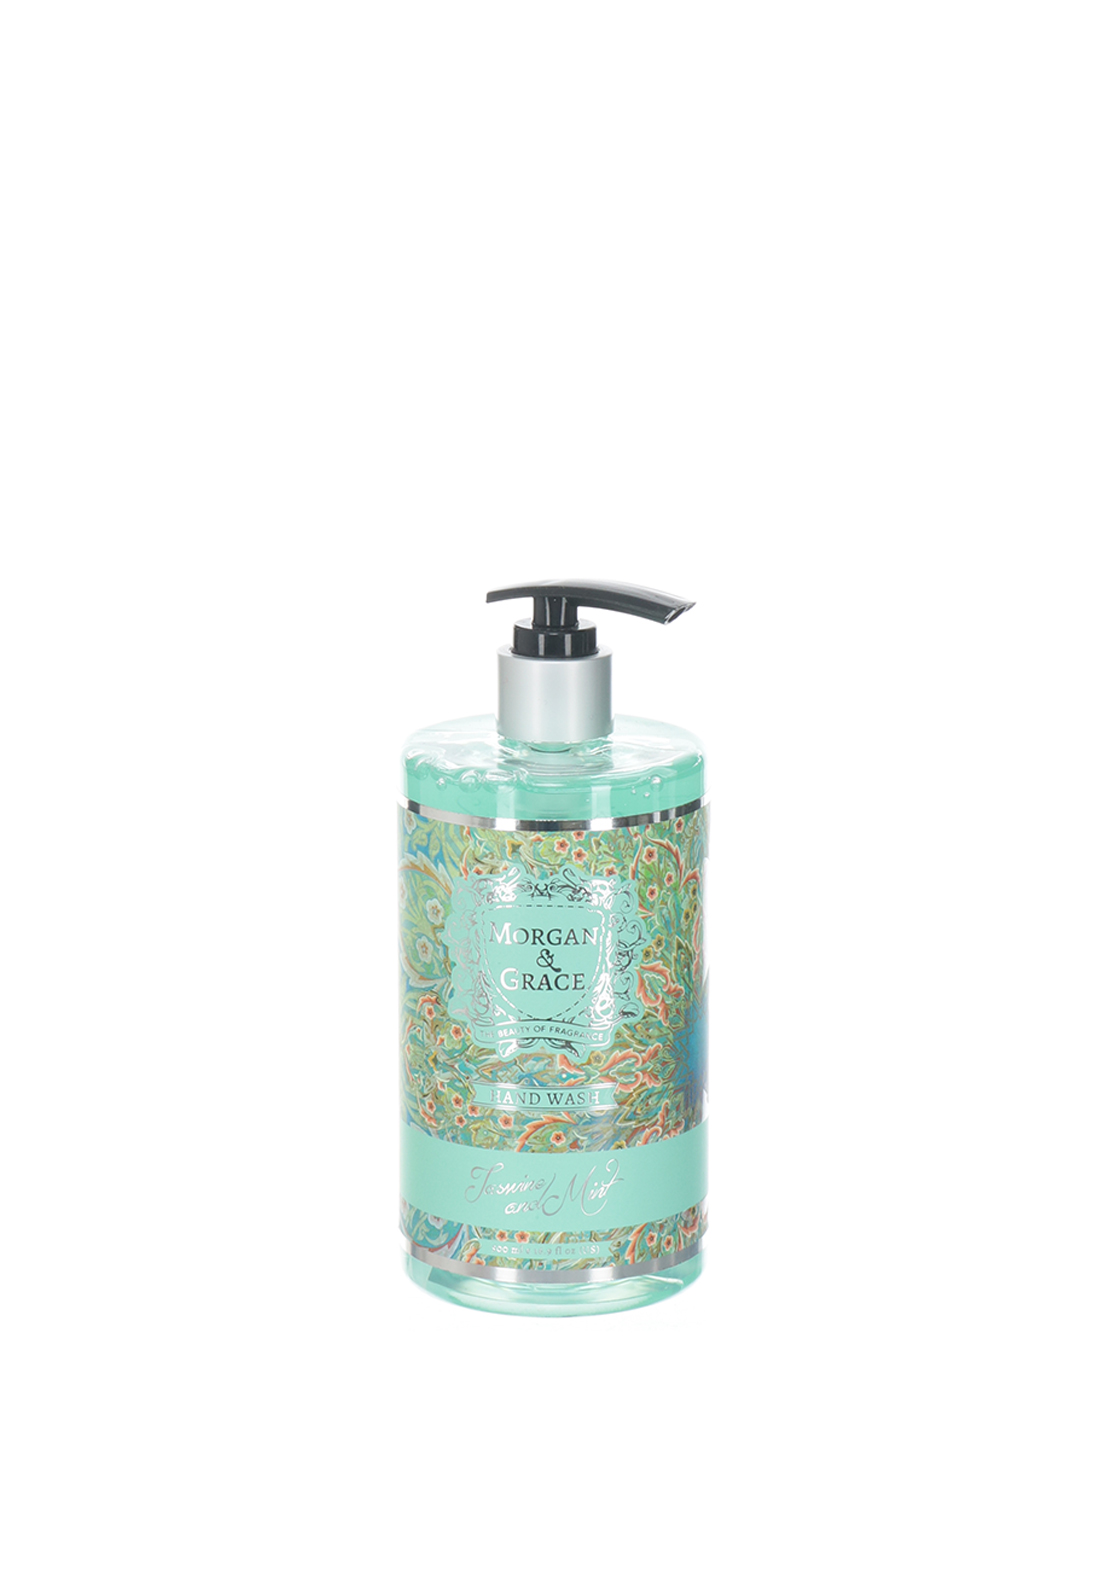 Morgan & Grace Jasmine & Mint Hand Wash, 500ml